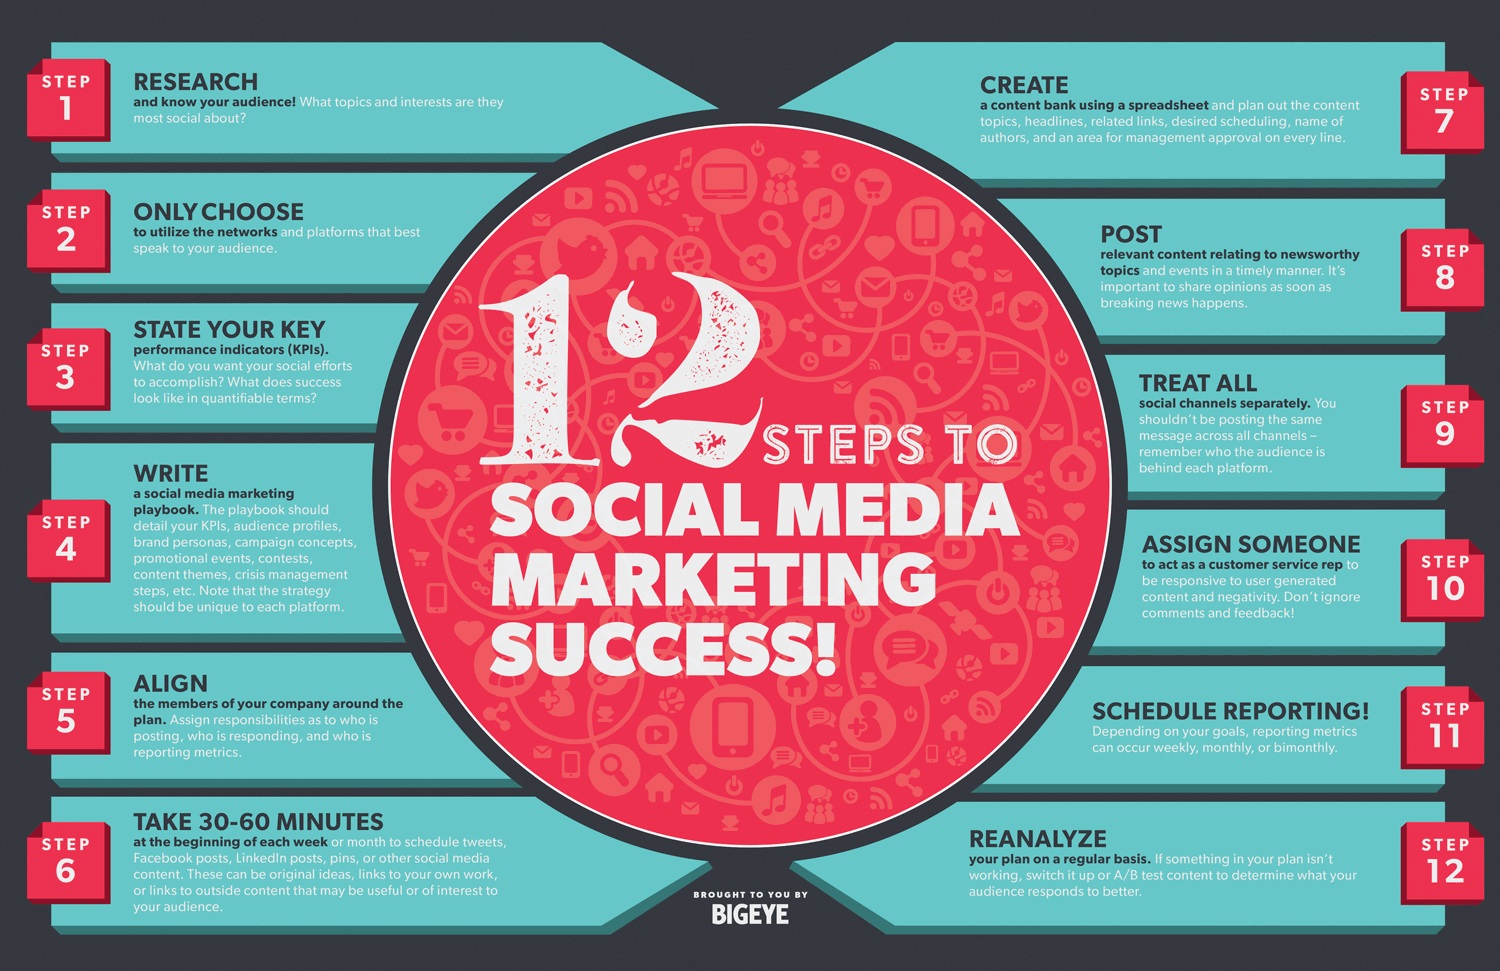 12-steps-to-social-media-marketing-success-infographic